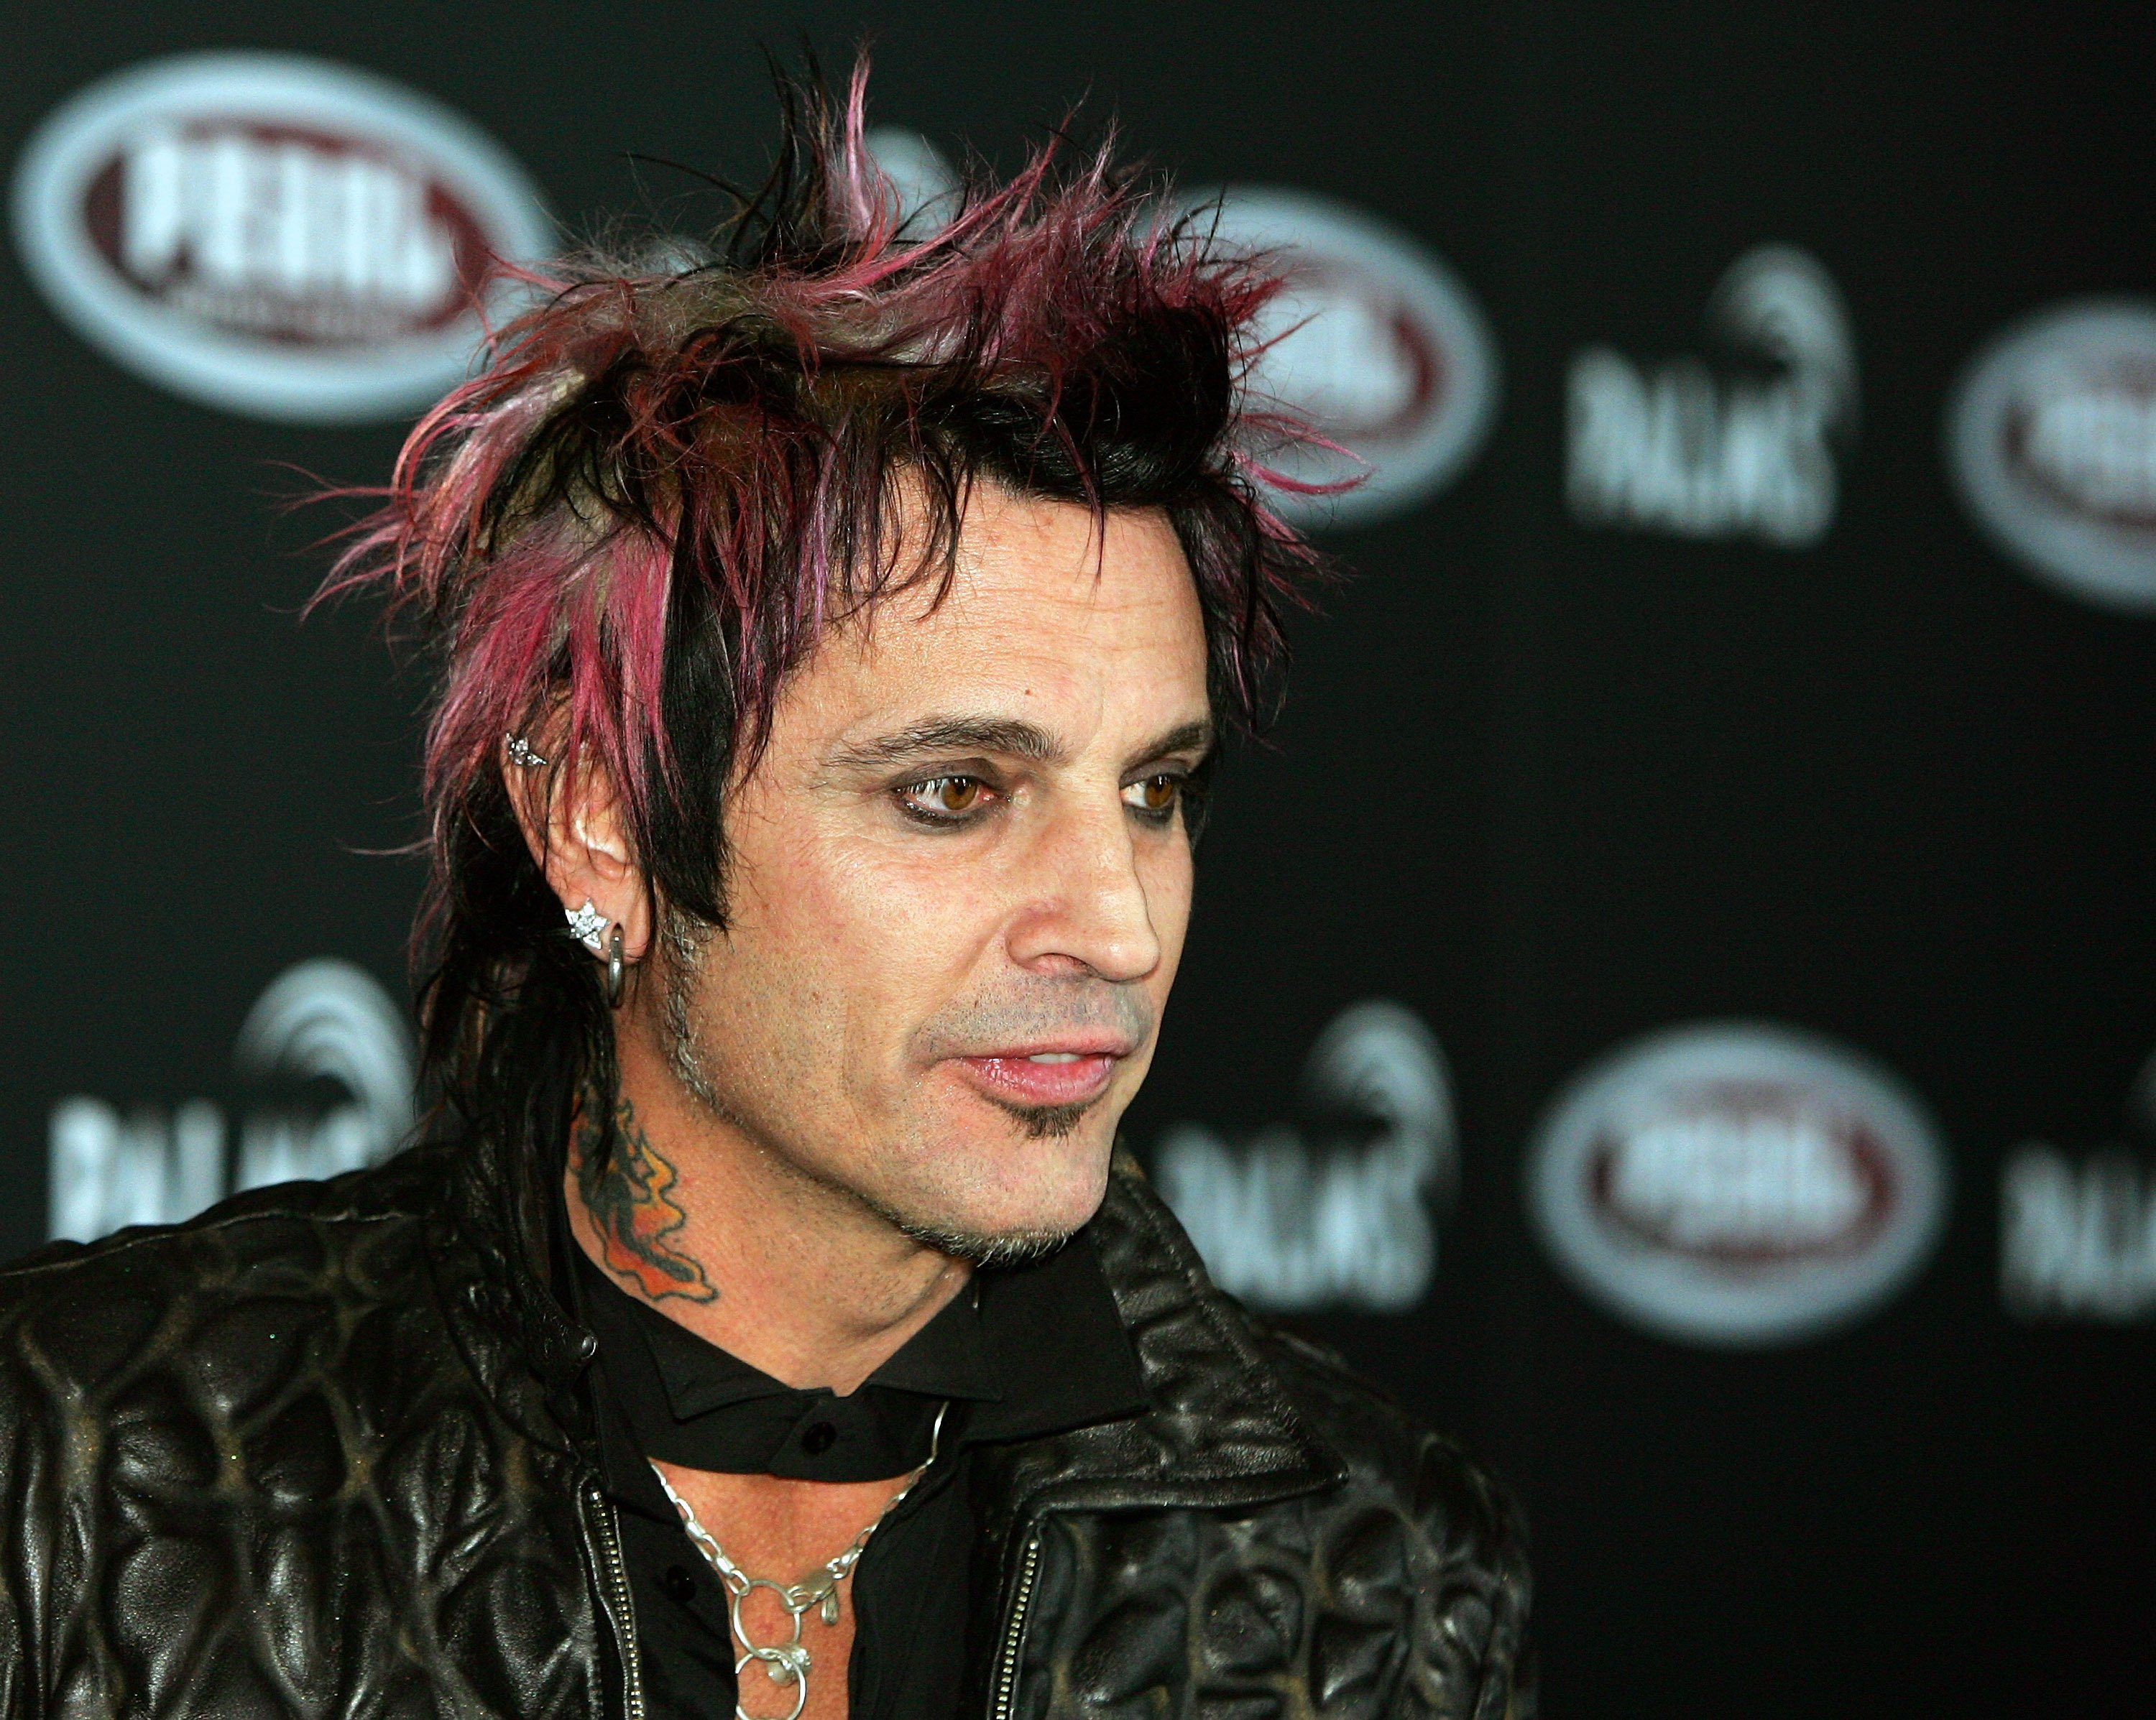 Tommy Lee arrives at the Palms Casino Resort April 21, 2007, in Las Vegas, Nevada.   Source: Getty Images.